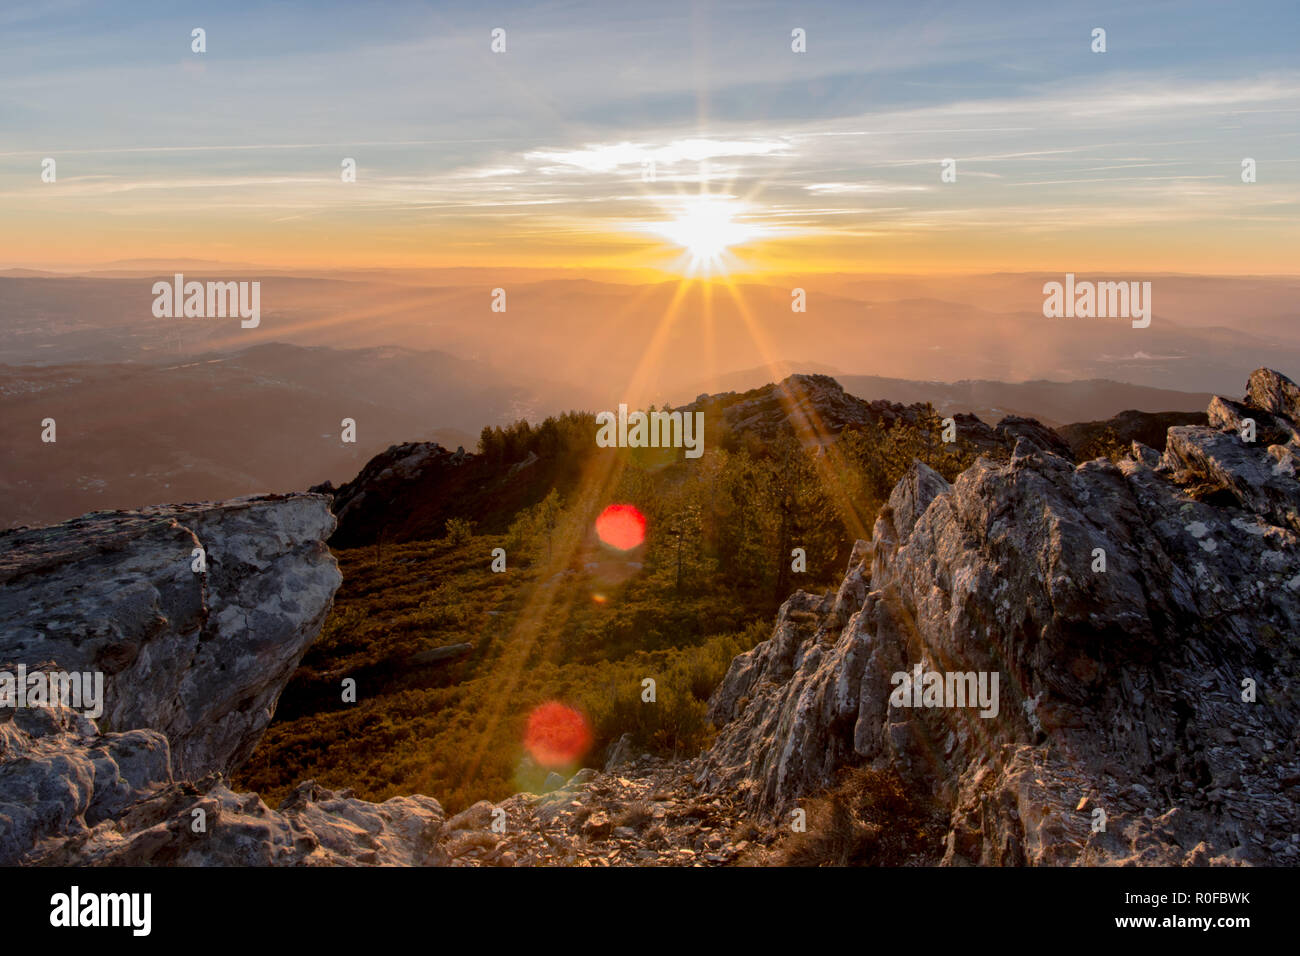 Sunrise at Marão - Stock Image